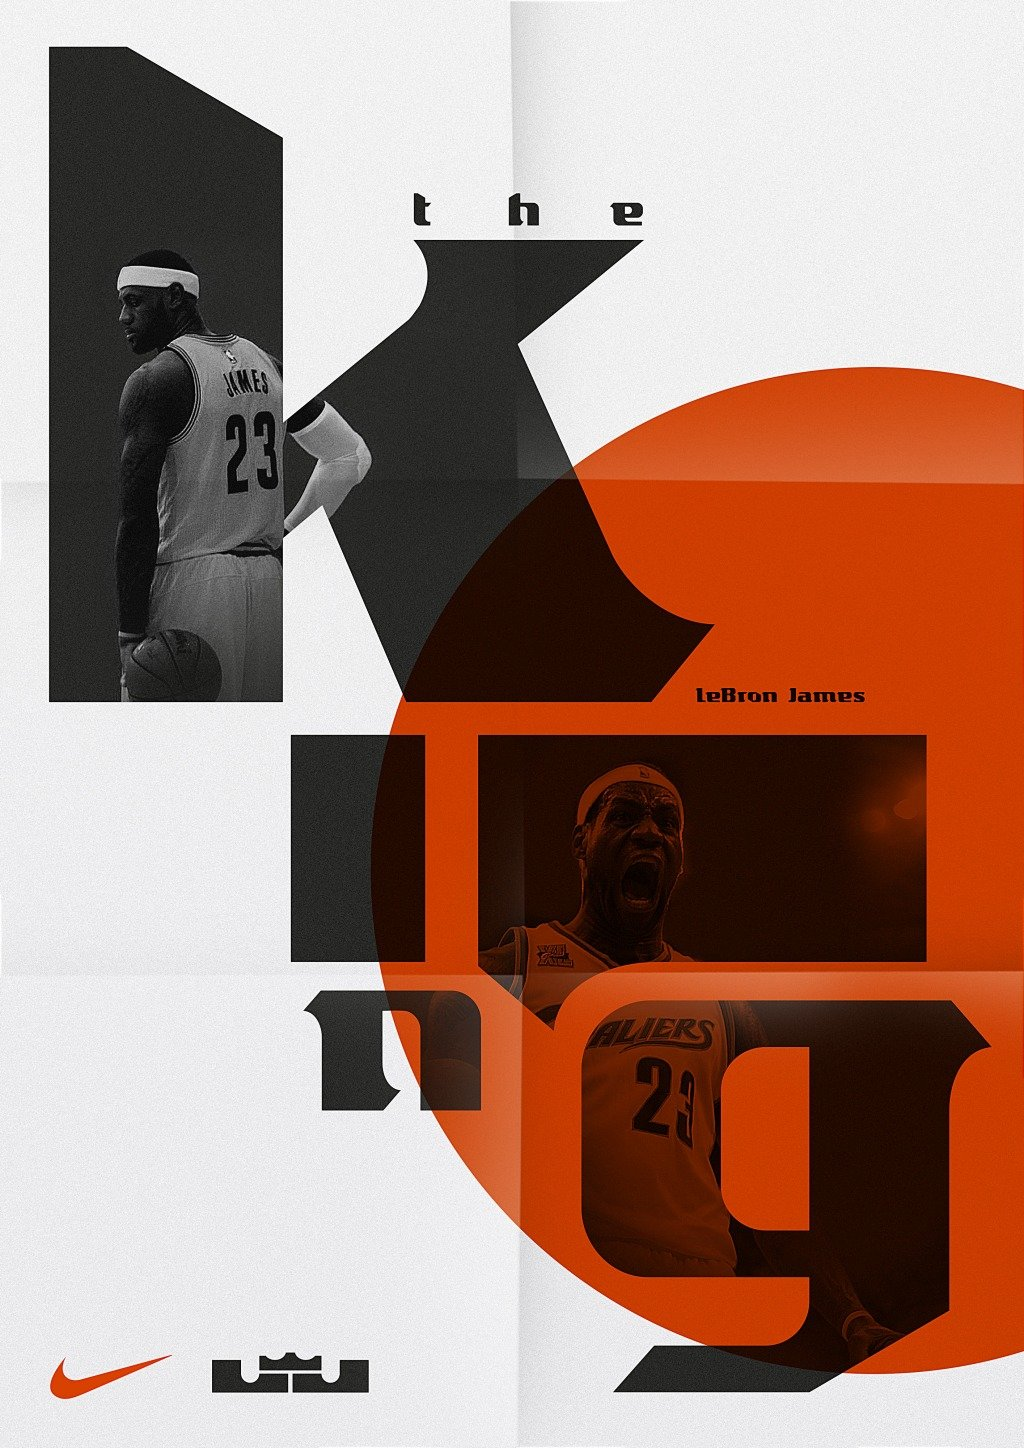 lebron-james-typeface-1-1024x1448